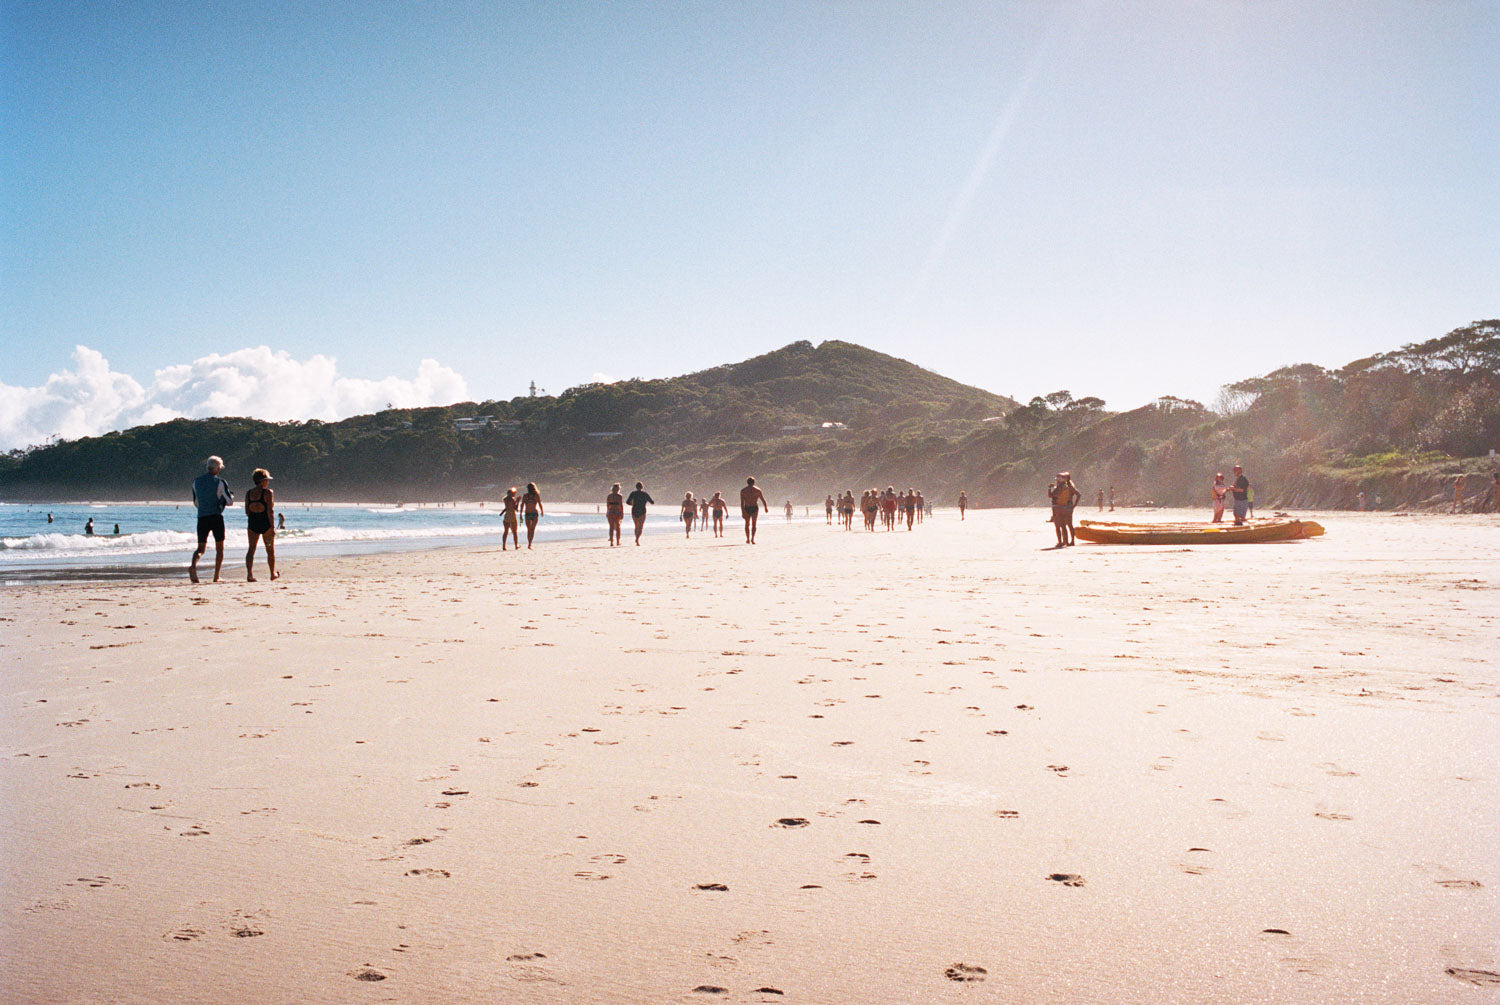 Byron bay beach with people walking in the distance, blue calm water, blue sky. Two men on a kayak head to the water